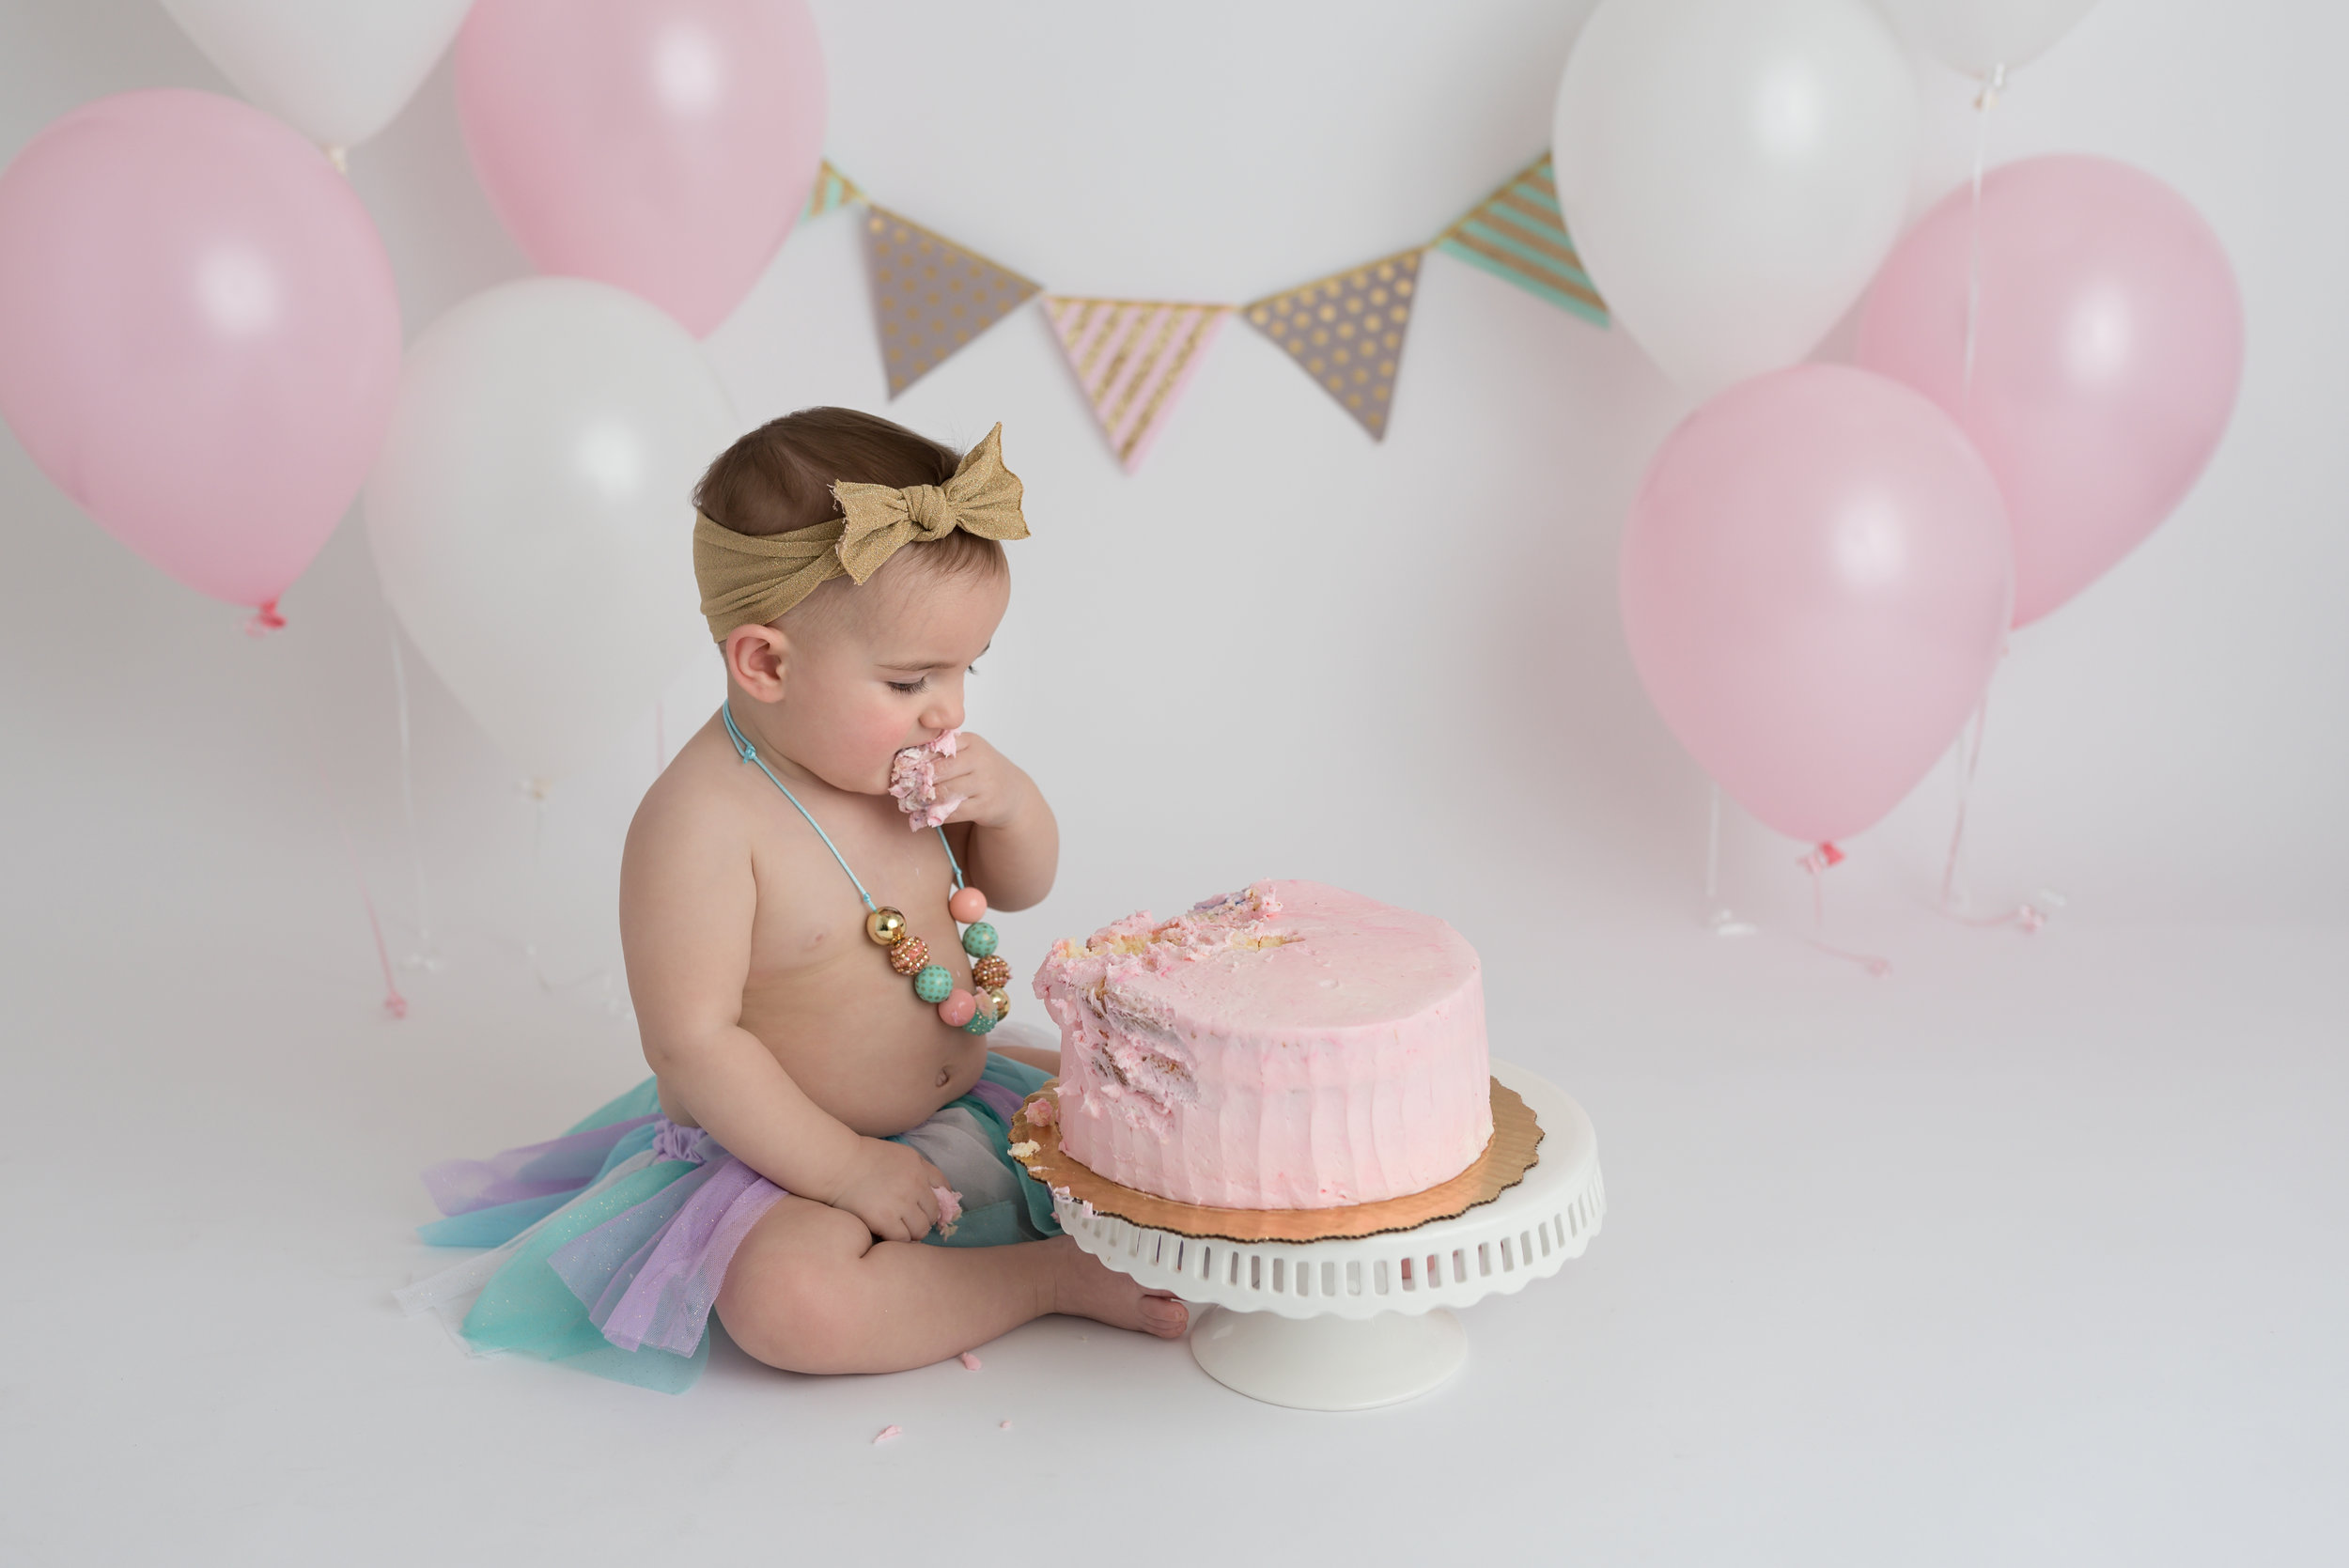 Charleston-Cake-Smash-Photographer-FSP_0895 copy.jpg